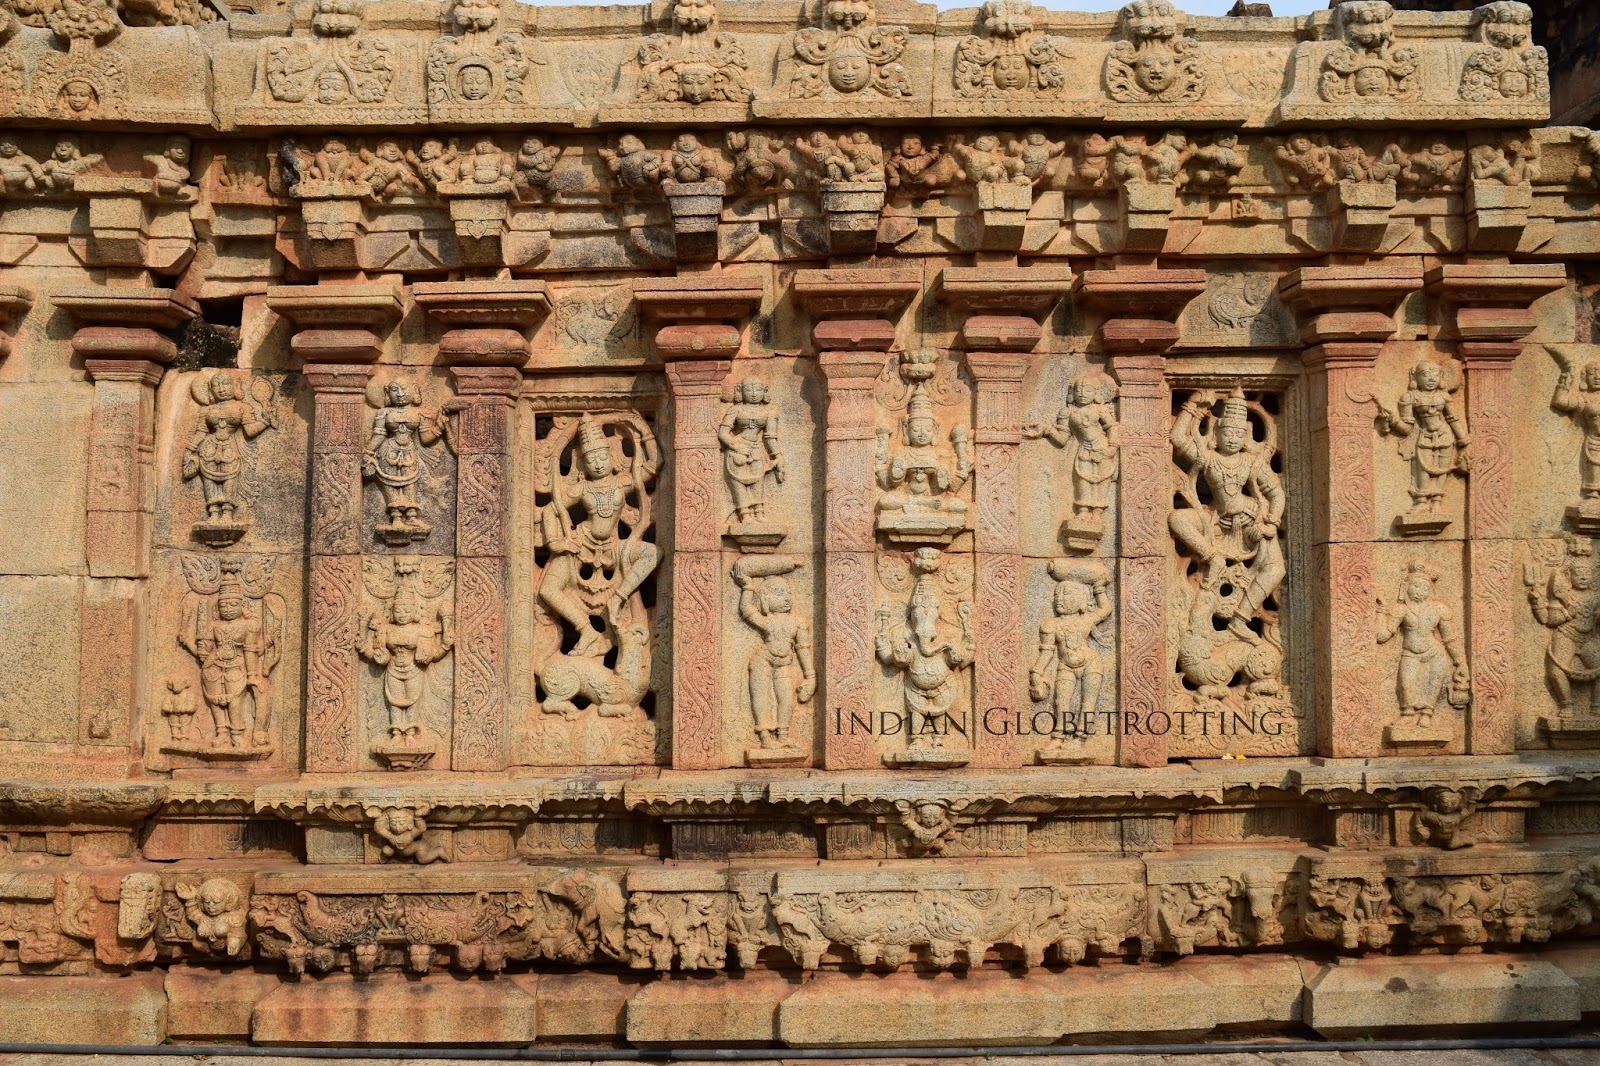 Sculptures on the wall of Bhoga Nandeeshwara Temple in Nandi Village